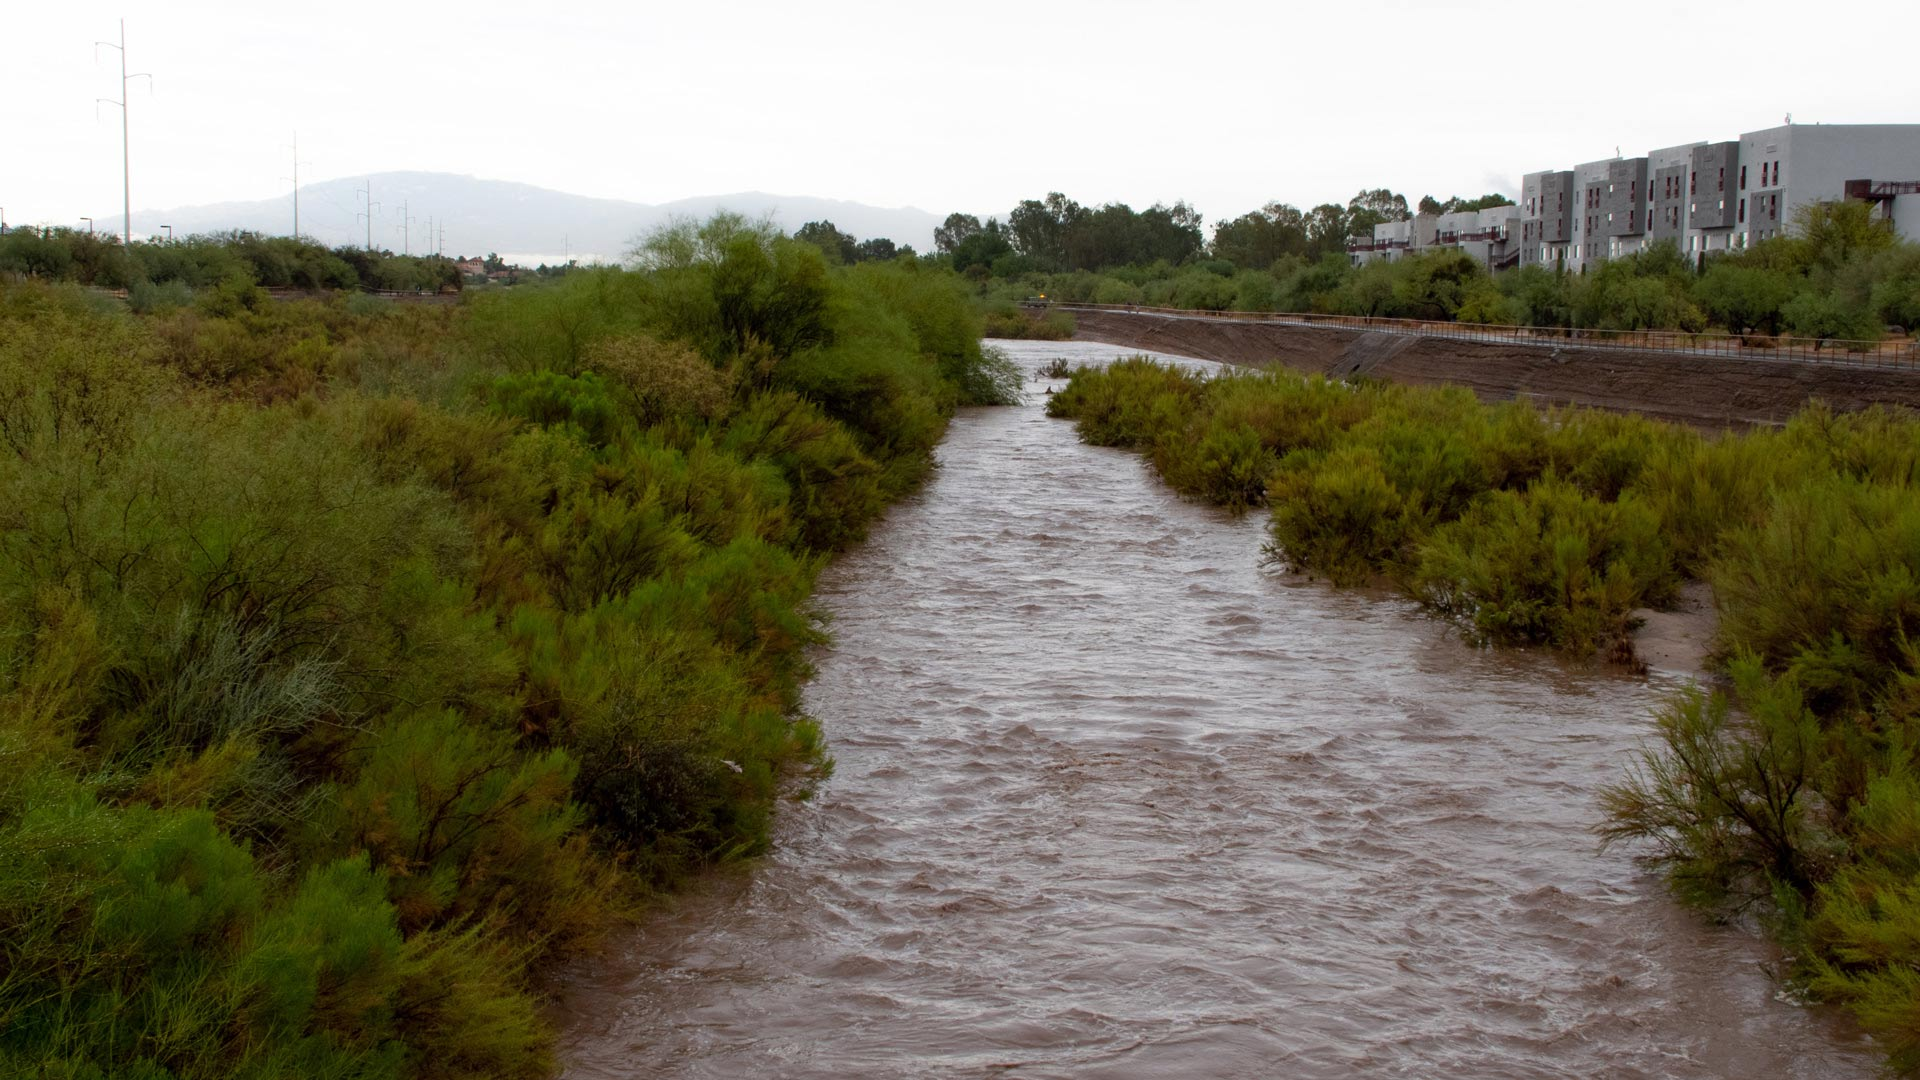 Water in the Rillito River following a monsoon storm.  July 23, 2020